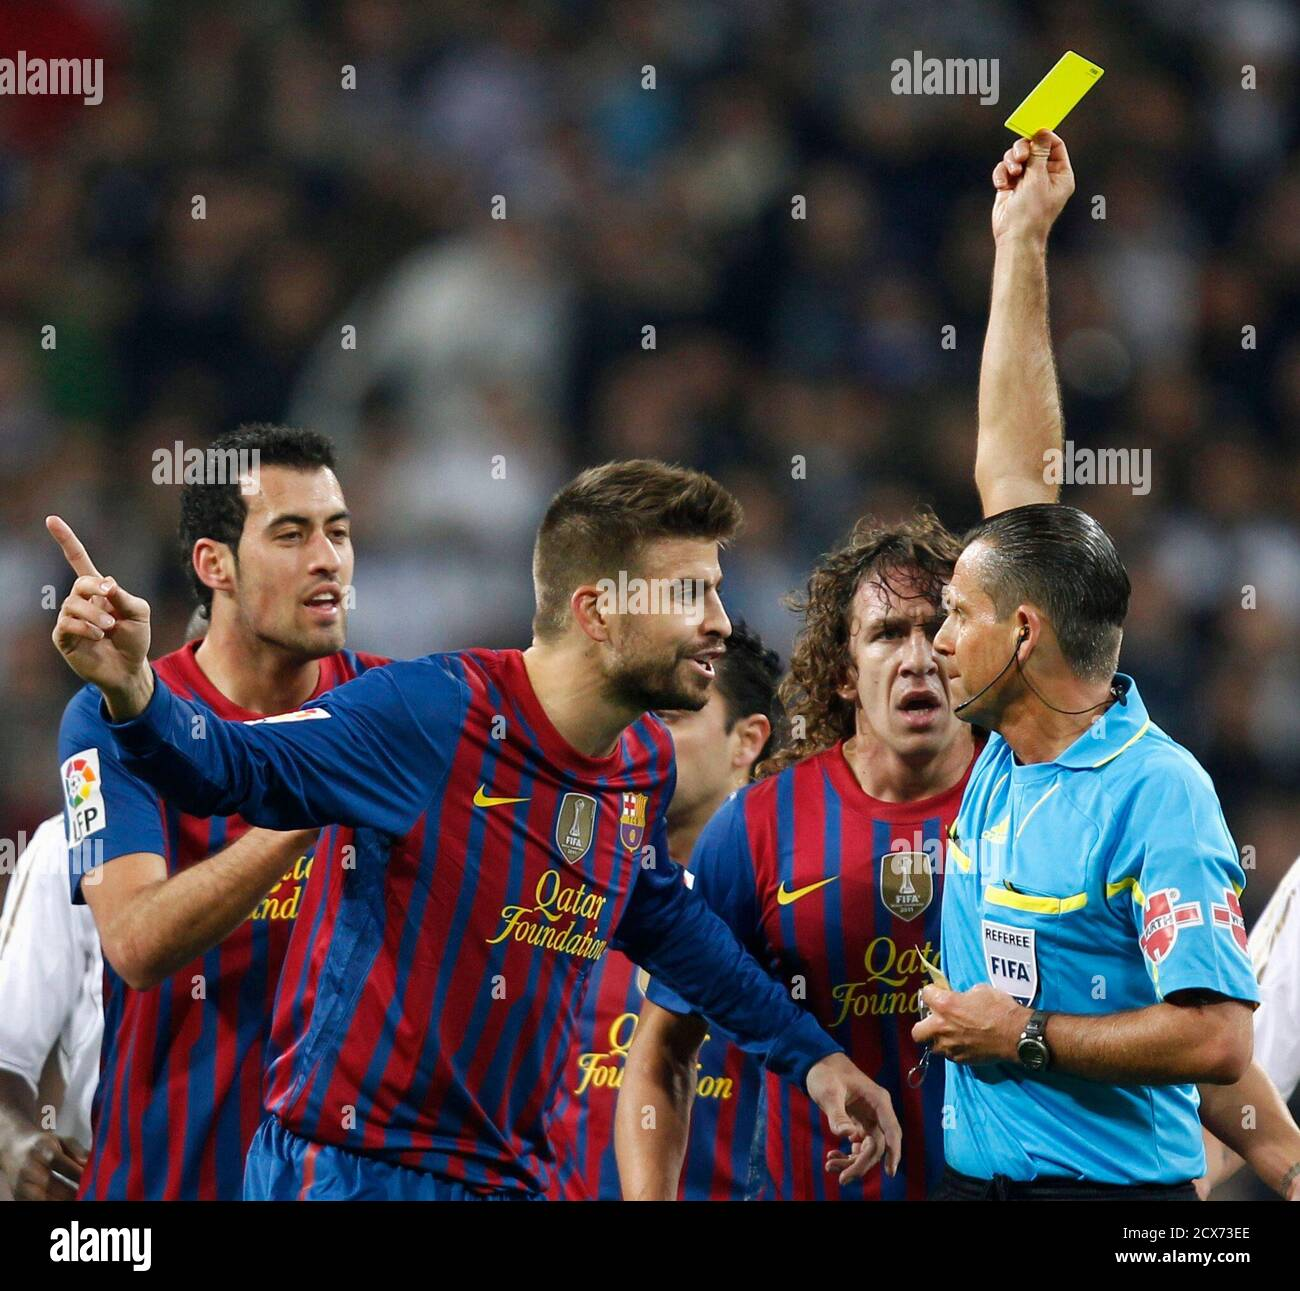 """Referee Cesar Muniz (R) shows the yellow card to Barcelona's Gerard Pique after jumping for the ball with Real Madrid's Pepe (not pictured), during their Spanish King's Cup quarter-final first leg """"El Clasico"""" soccer match at the Santiago Bernabeu stadium in Madrid, January 18, 2012.  REUTERS/Sergio Perez (SPAIN - Tags: SPORT SOCCER) Stock Photo"""